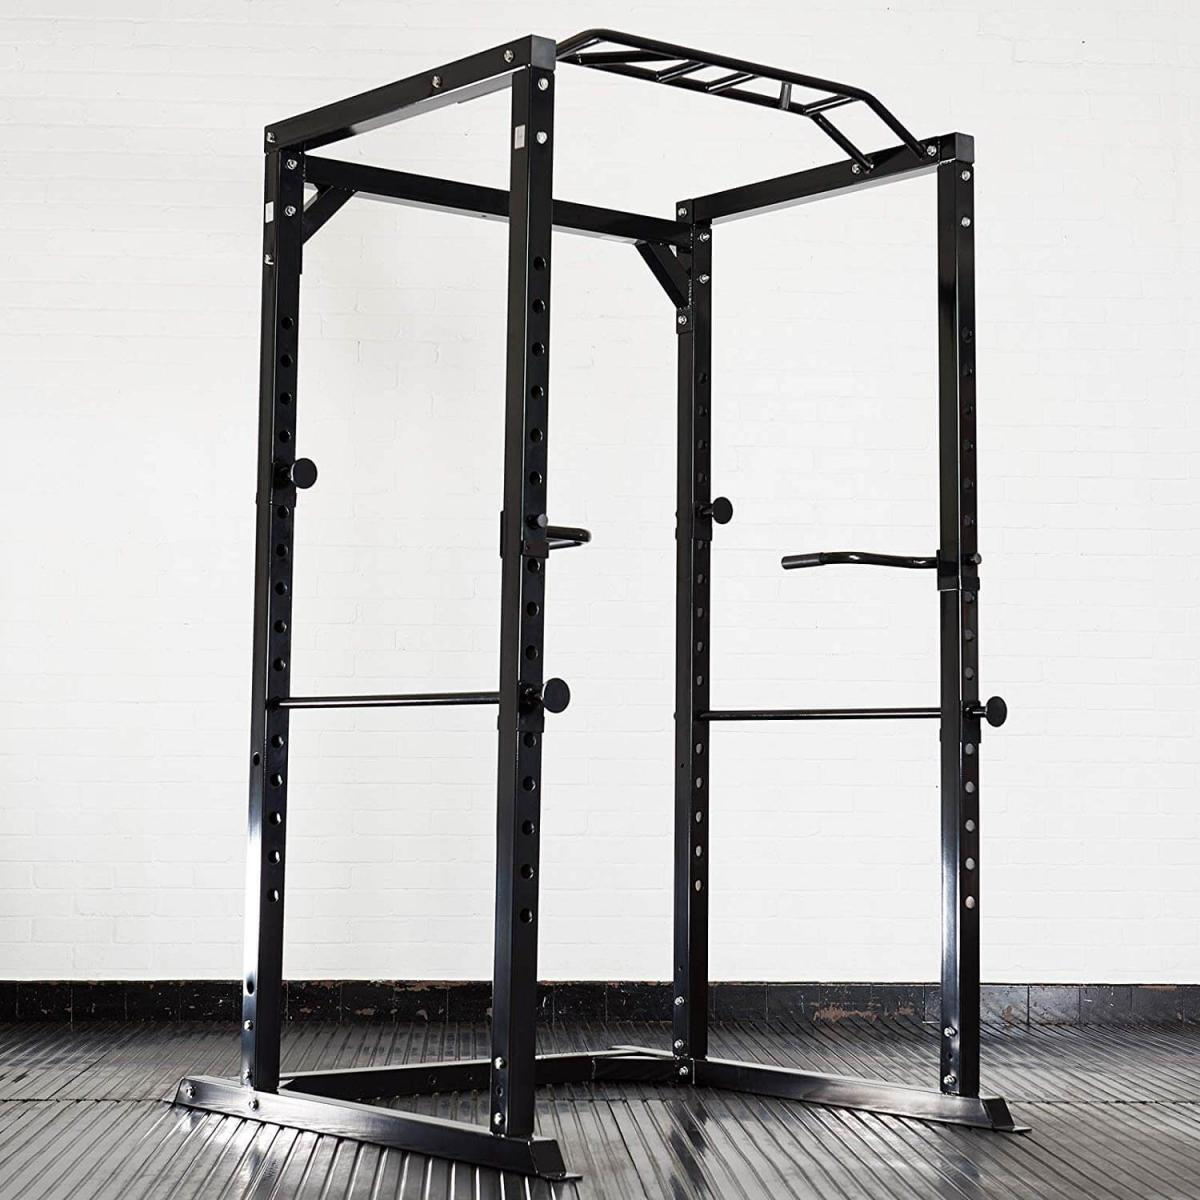 Mirafit Heavy Duty Olympic Power Cage with Multi-Grip Pull-Up Bar